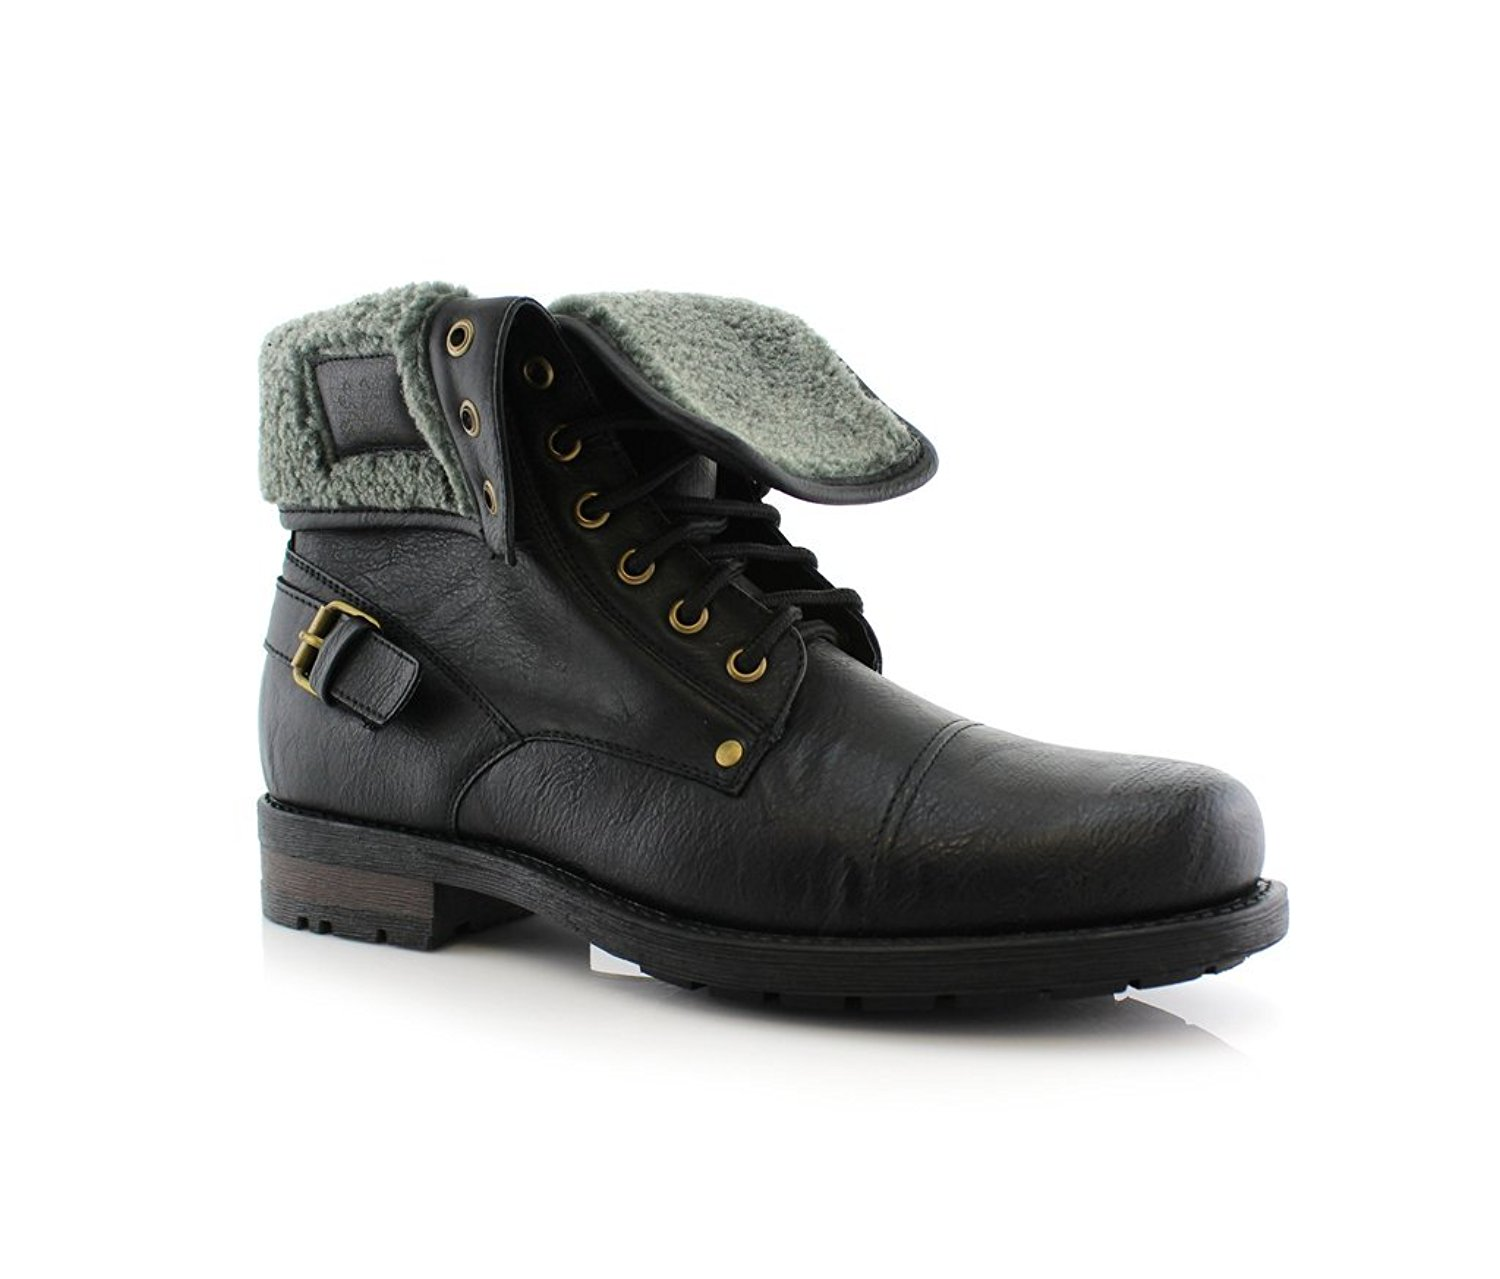 5ffc62fdb3ab Get Quotations · Polar Fox Men s 506015 Military Fold Down Wool Lined  Combat Style Desert Ankle Boots